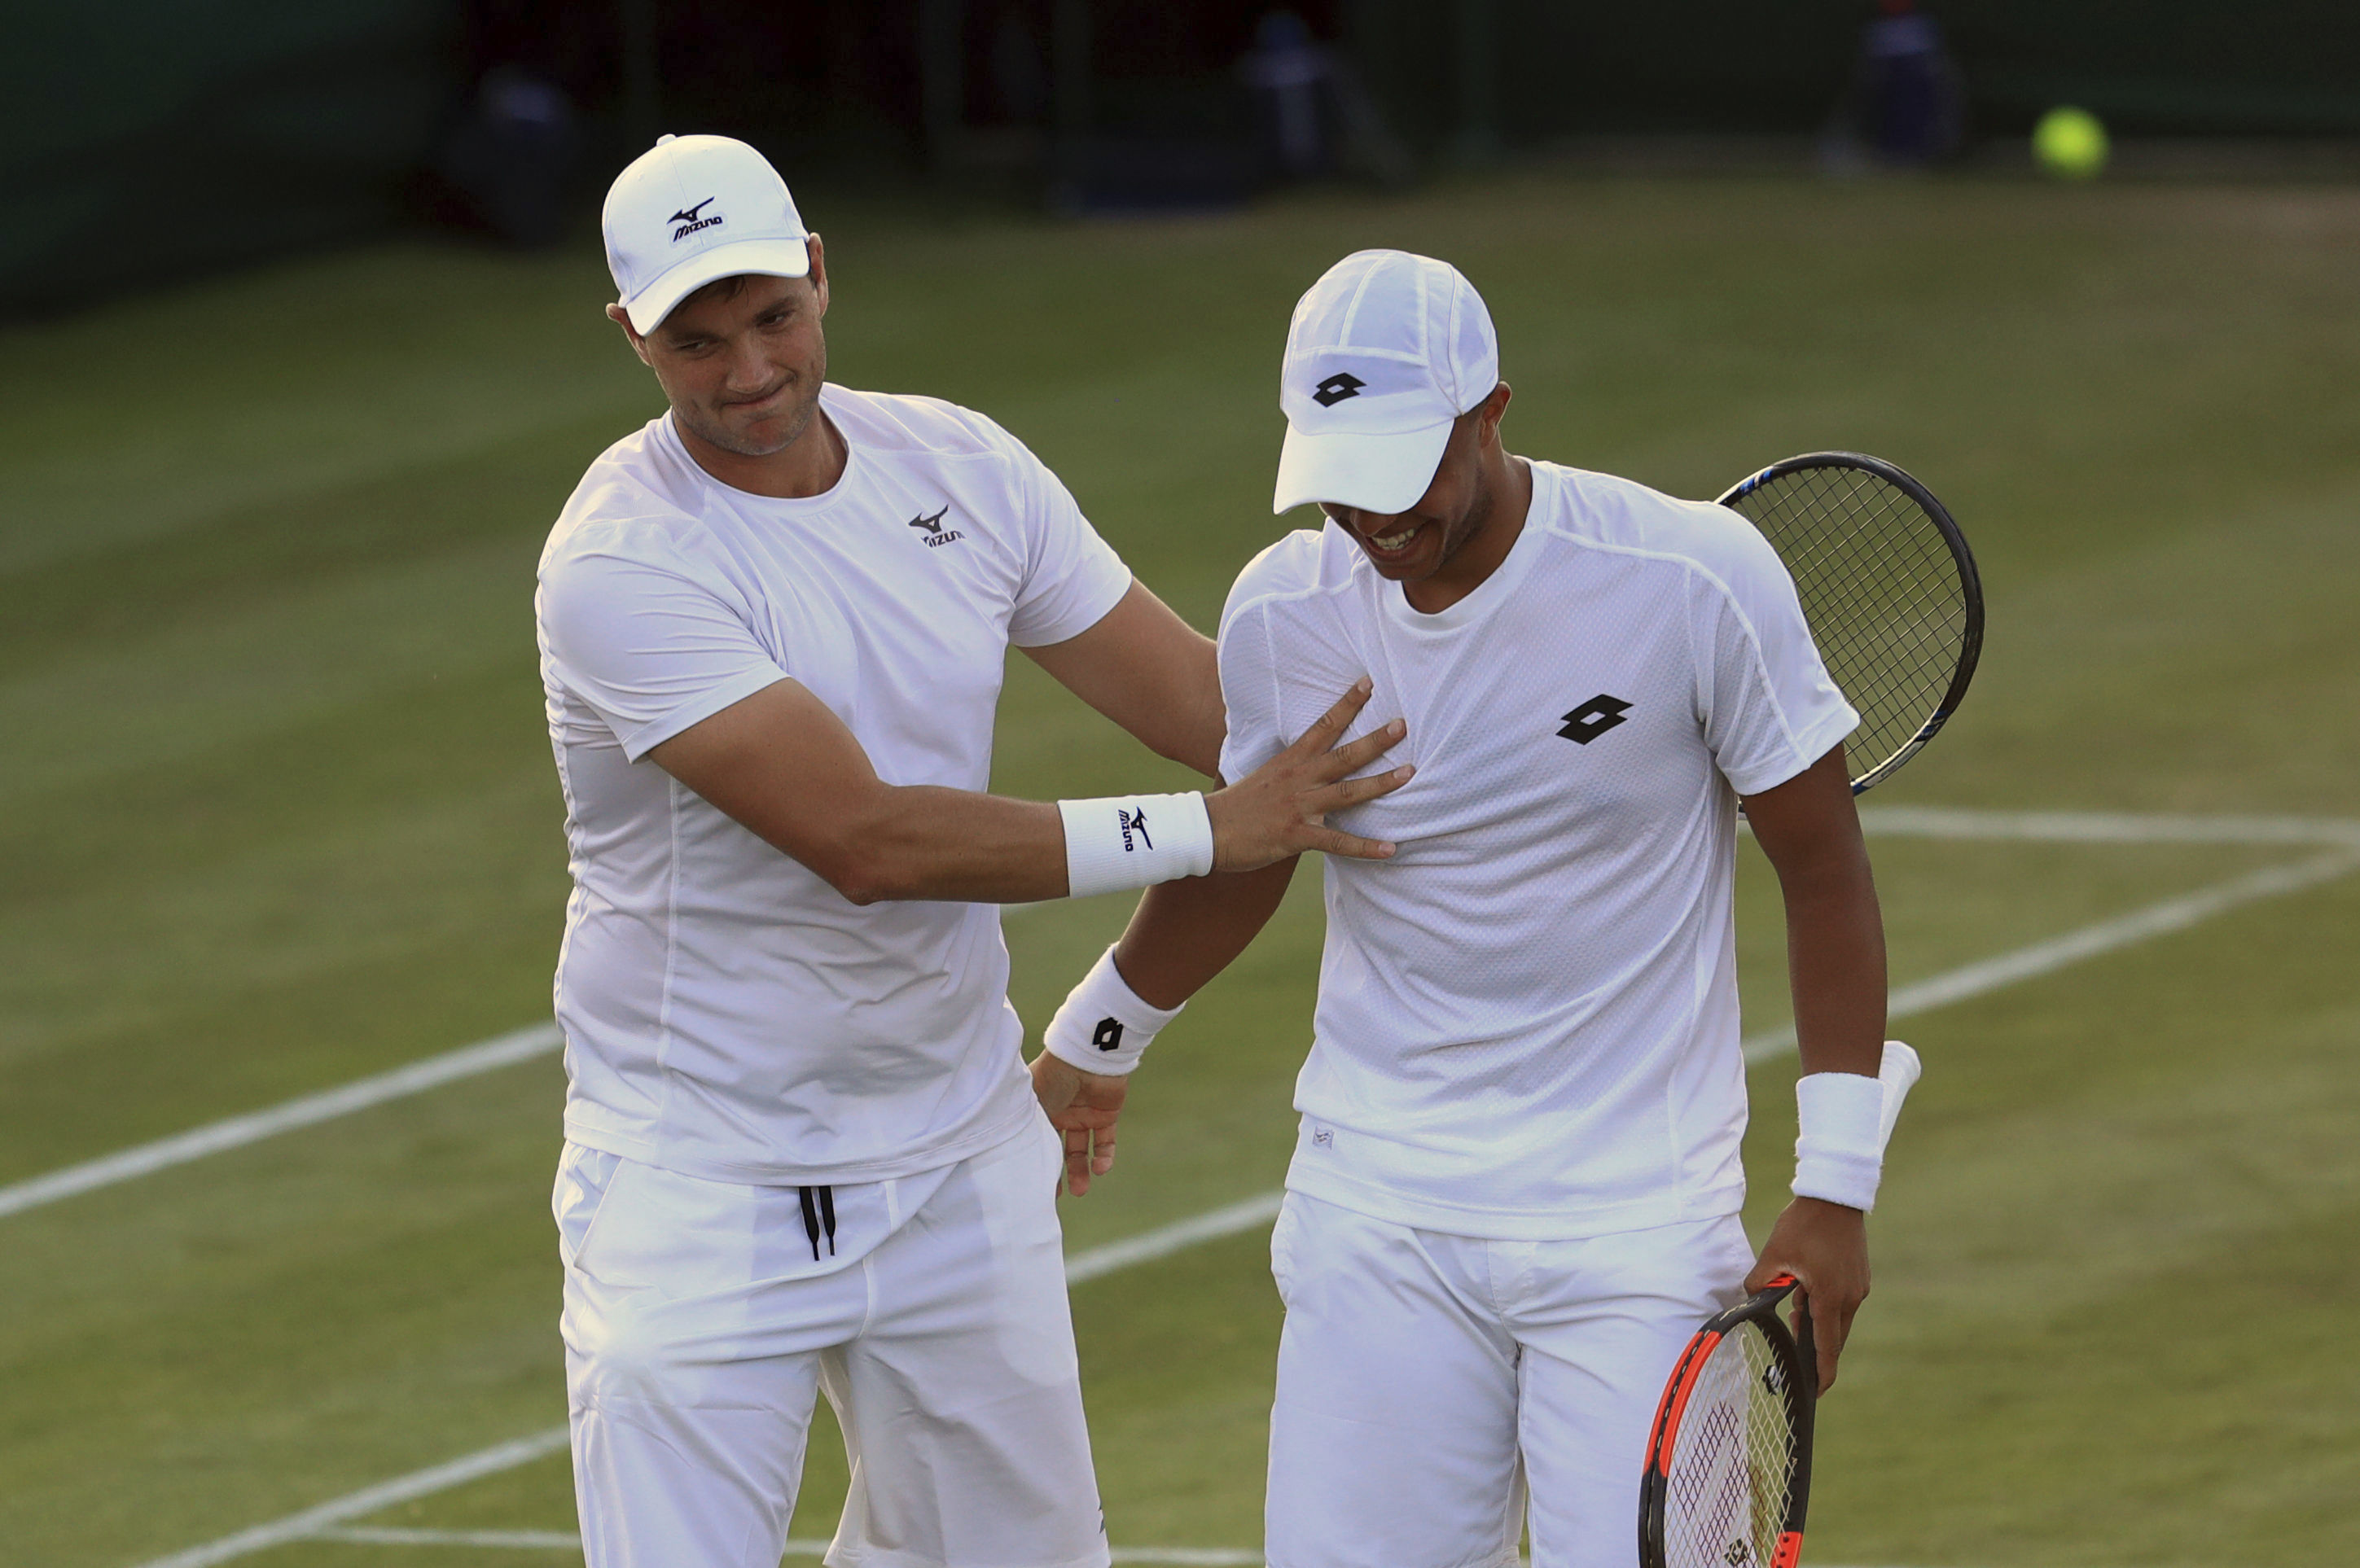 Marcus Willis, left, and Jay Clarke of Britain celebrate winning their doubles match against Jared Donaldson of the US and Jeevan Nedunchezhiyan of India on day three at the Wimbledon Tennis Championships in London, Wednesday, July 5, 2017. (Adam Davy/PA